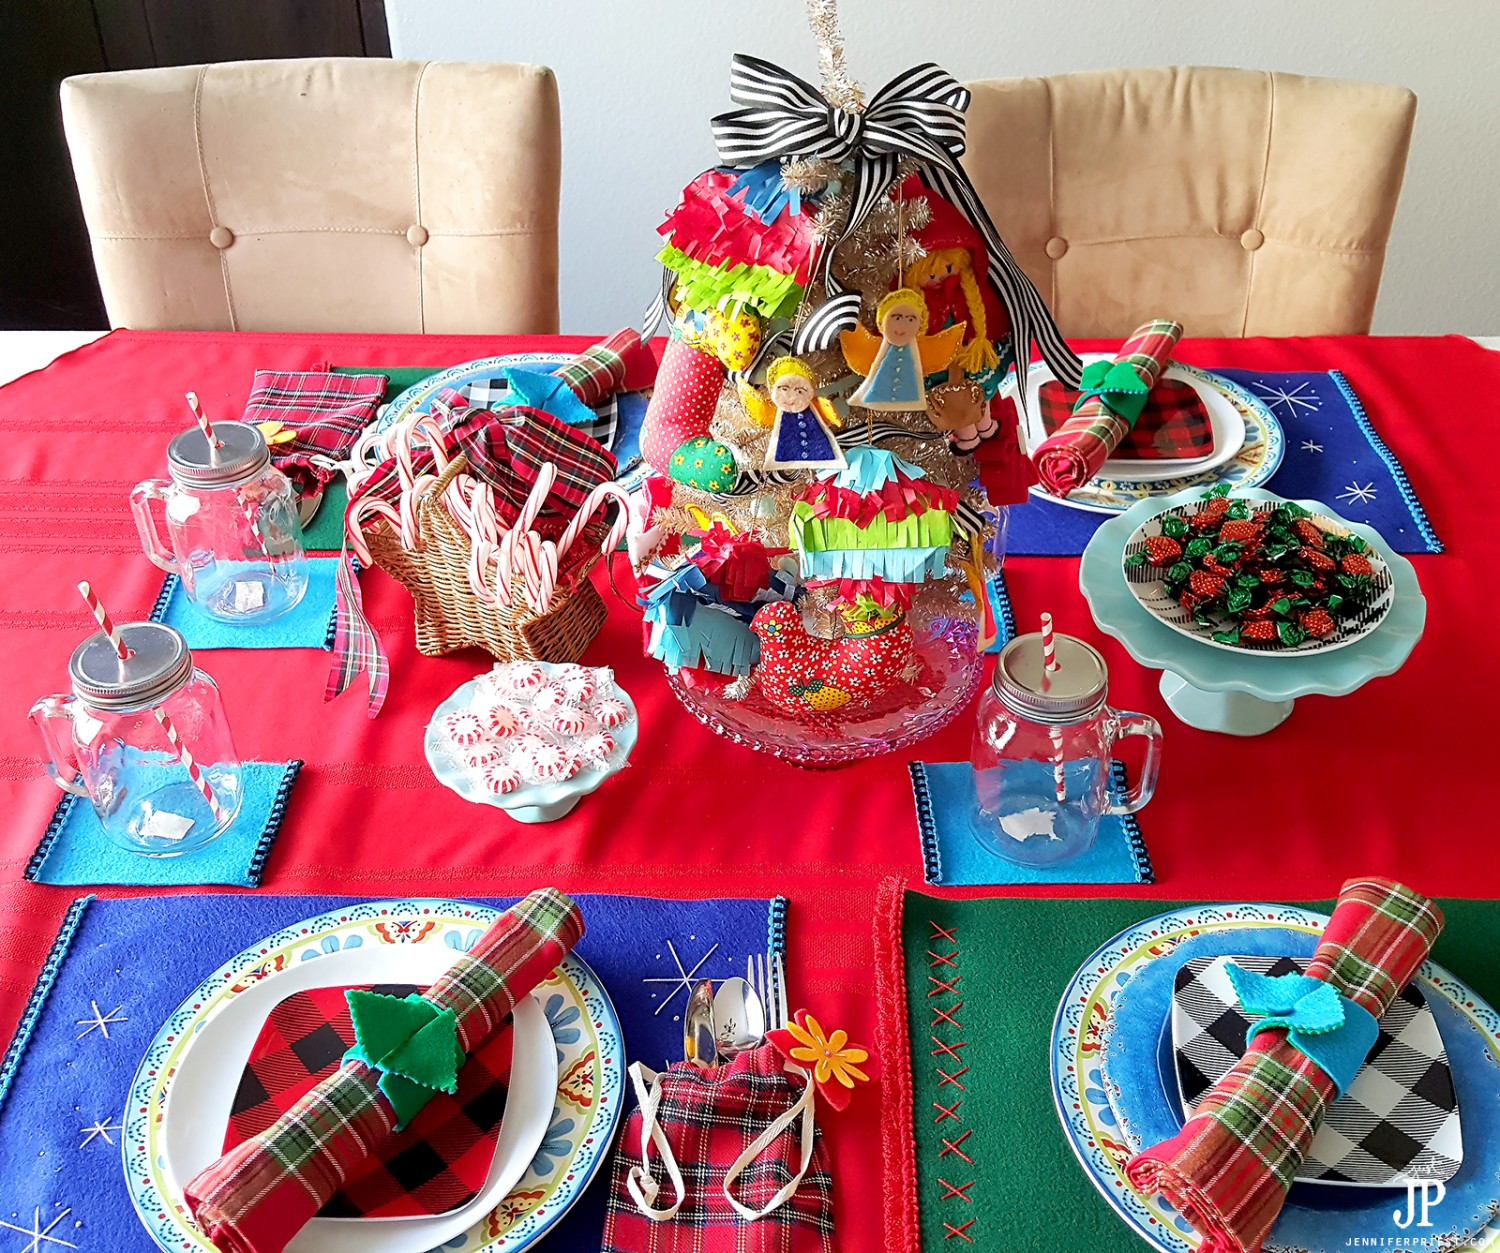 DIY-Christmas-Table-Scape-inspired-by-Lainto-Culture-Blended-with-White-Culture-JPriest